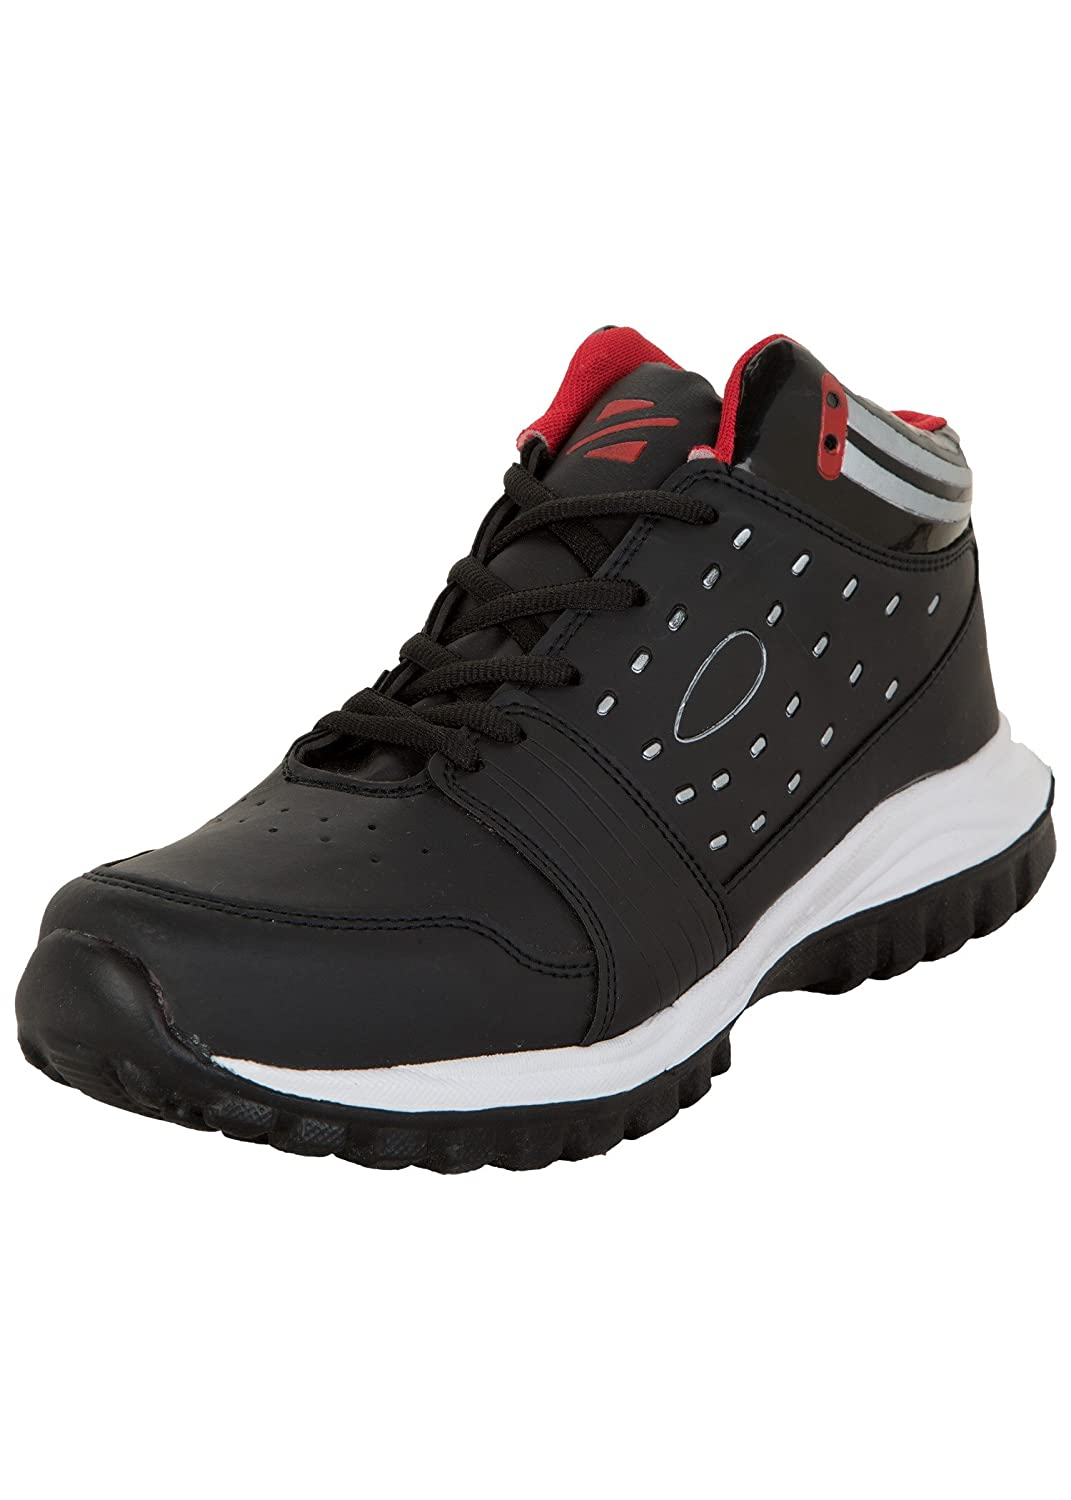 Buy Zovi Synthetic Black High Ankle